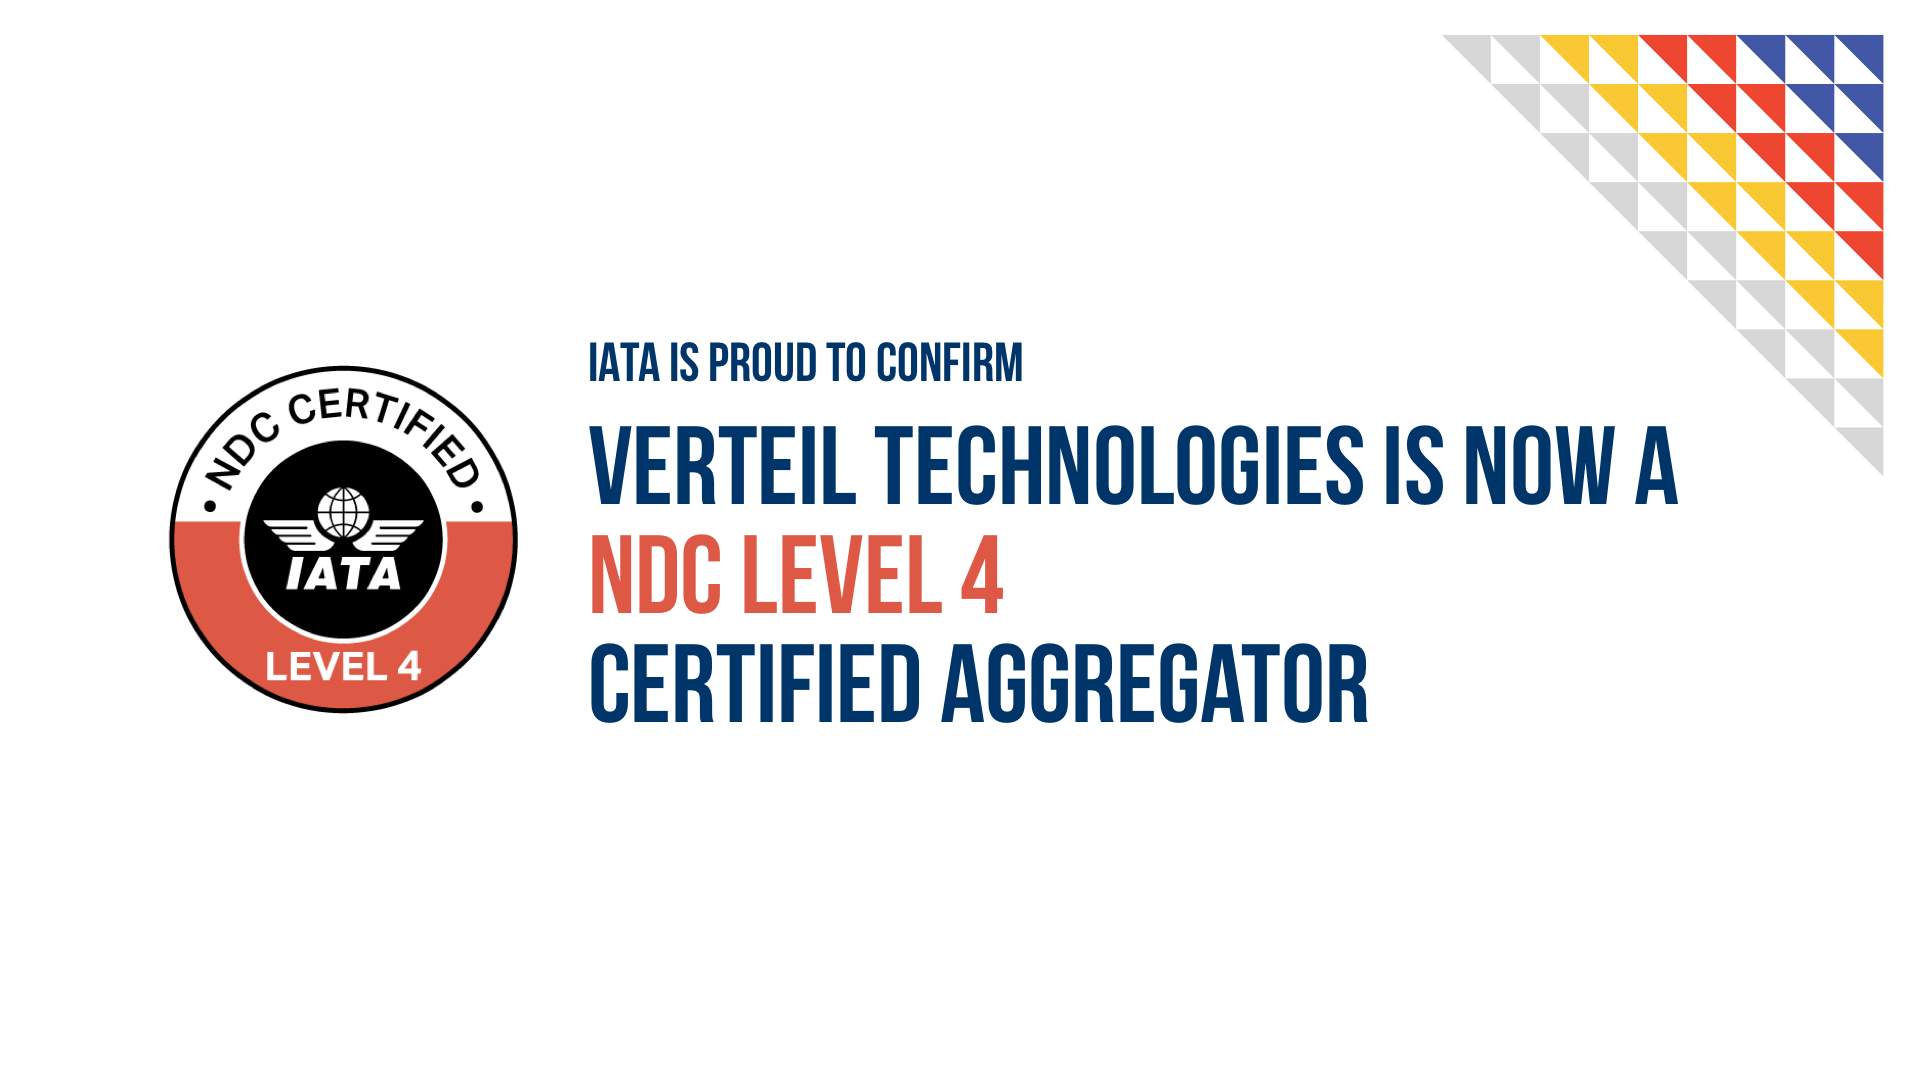 NDC Level 4 certification